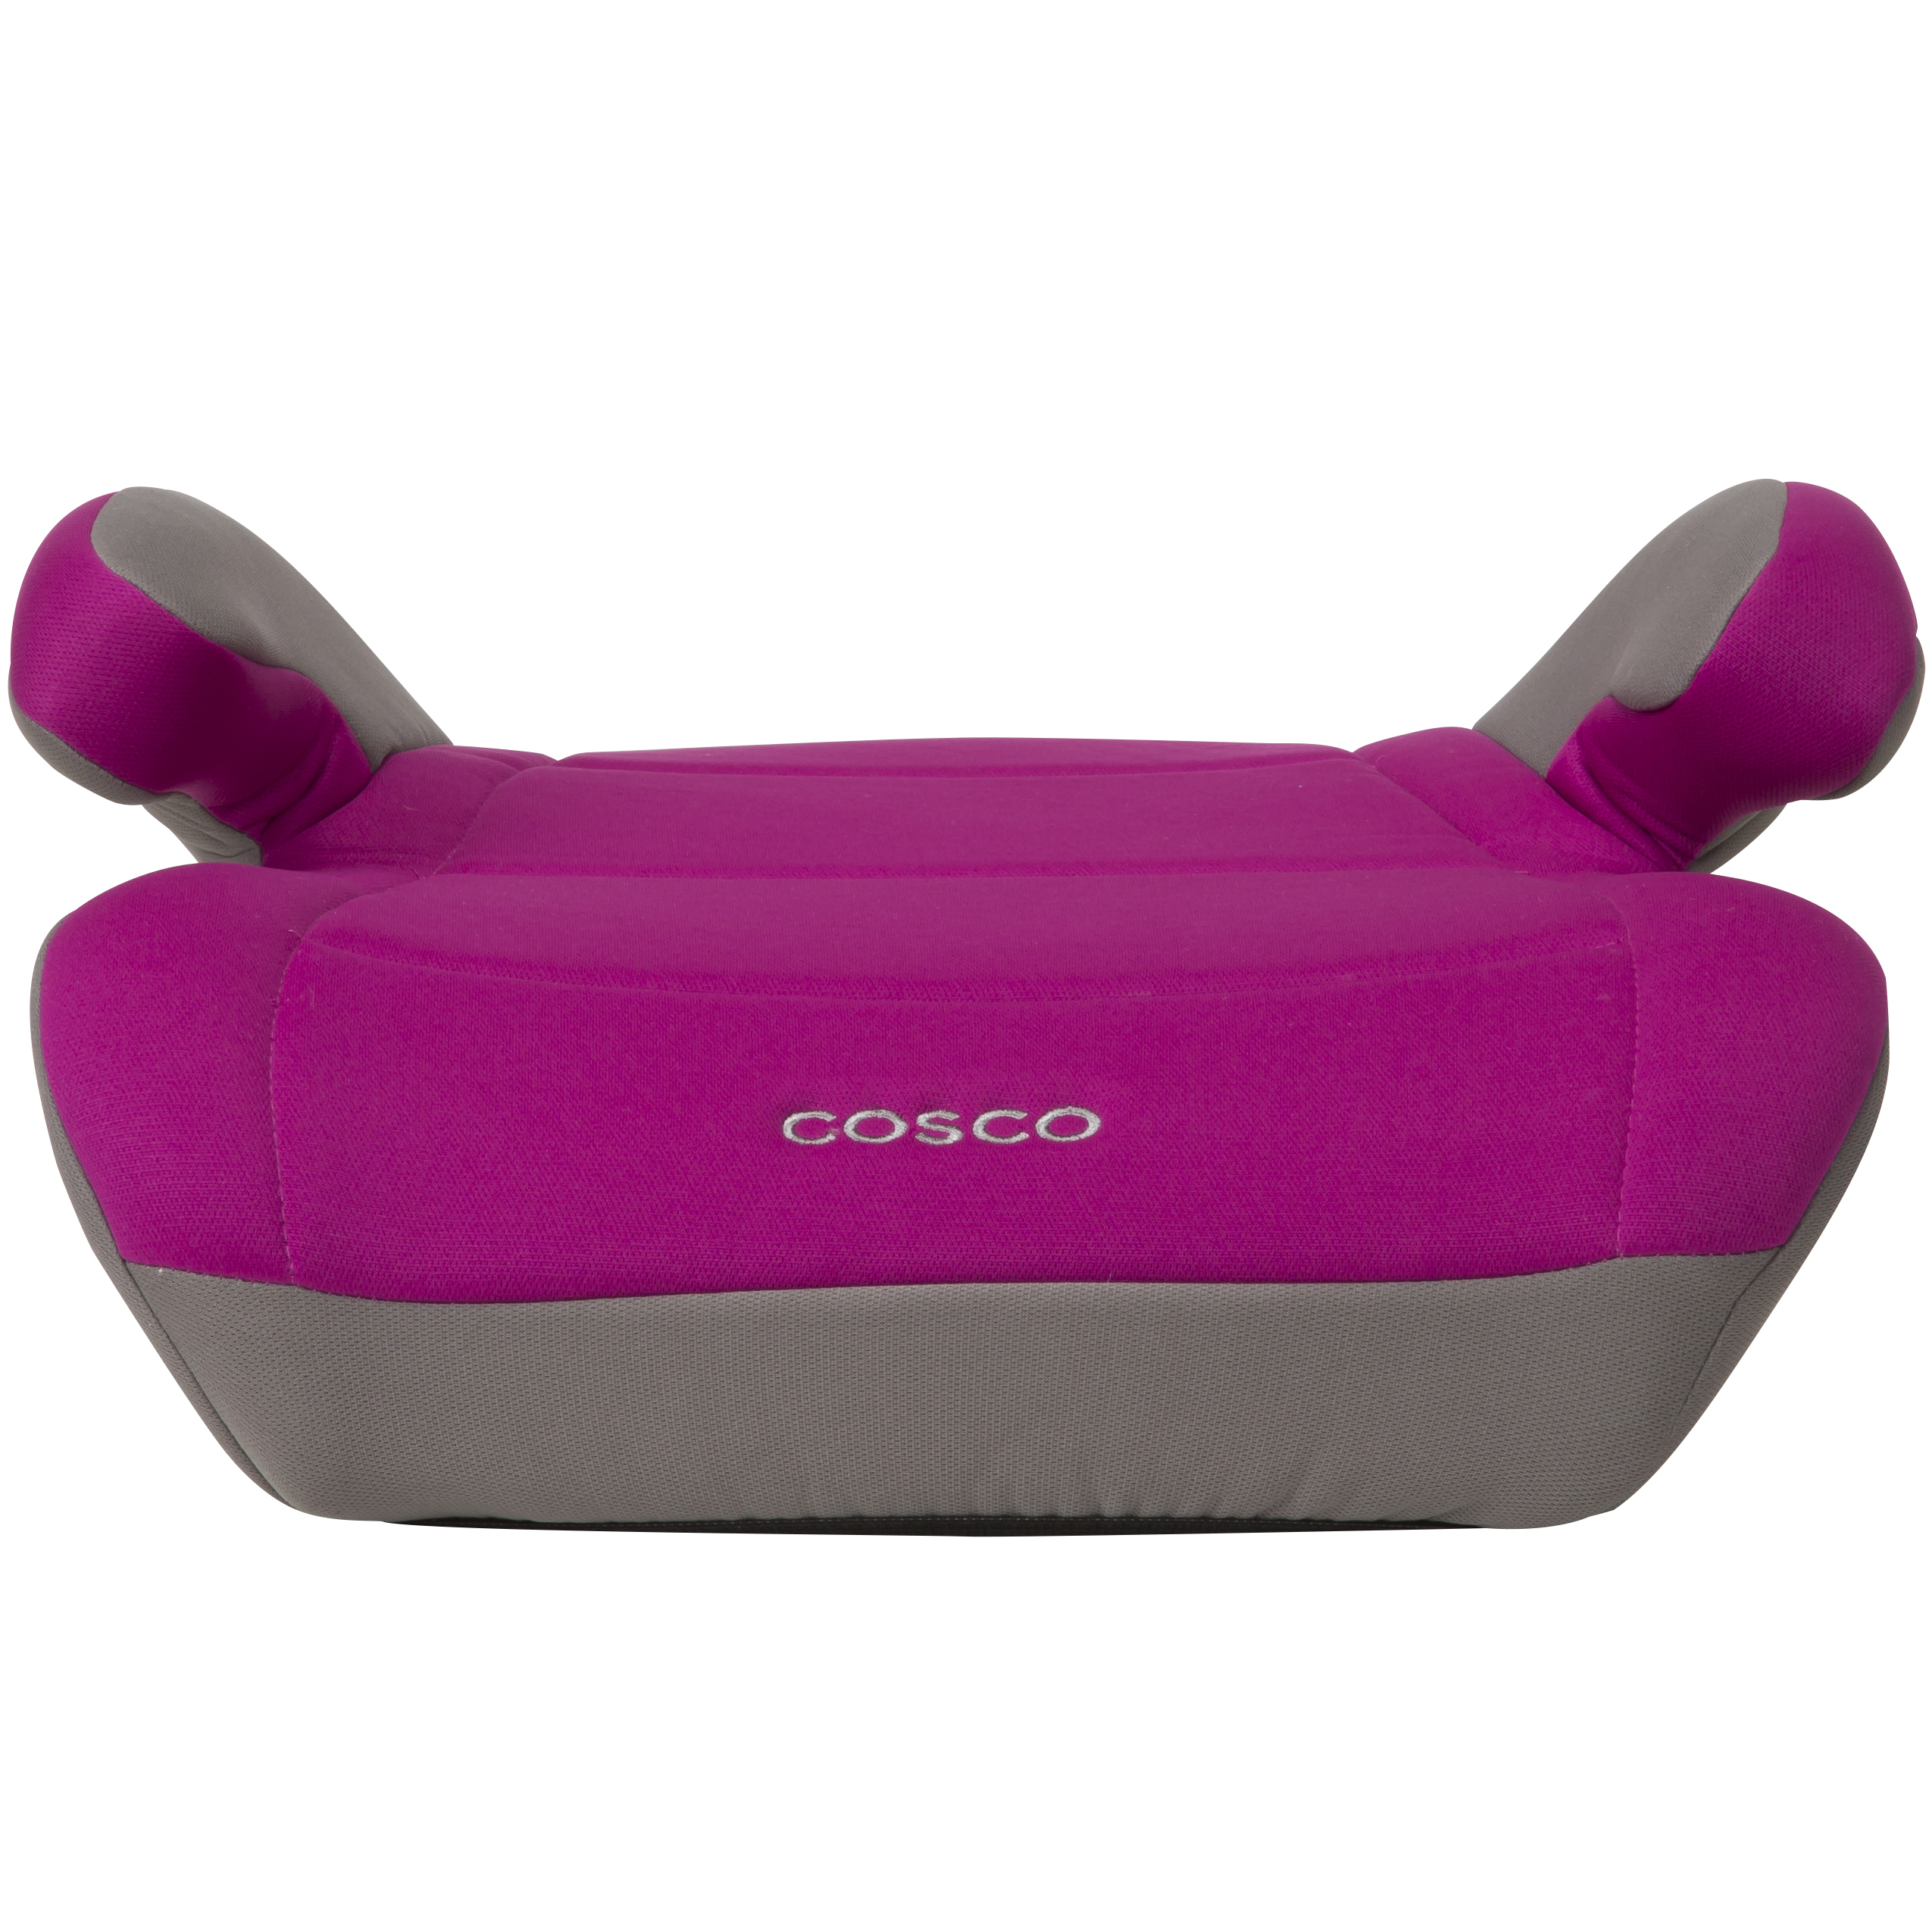 Cosco Topside Booster Car Seat - Easy to Move, Lightweight Design, Magenta